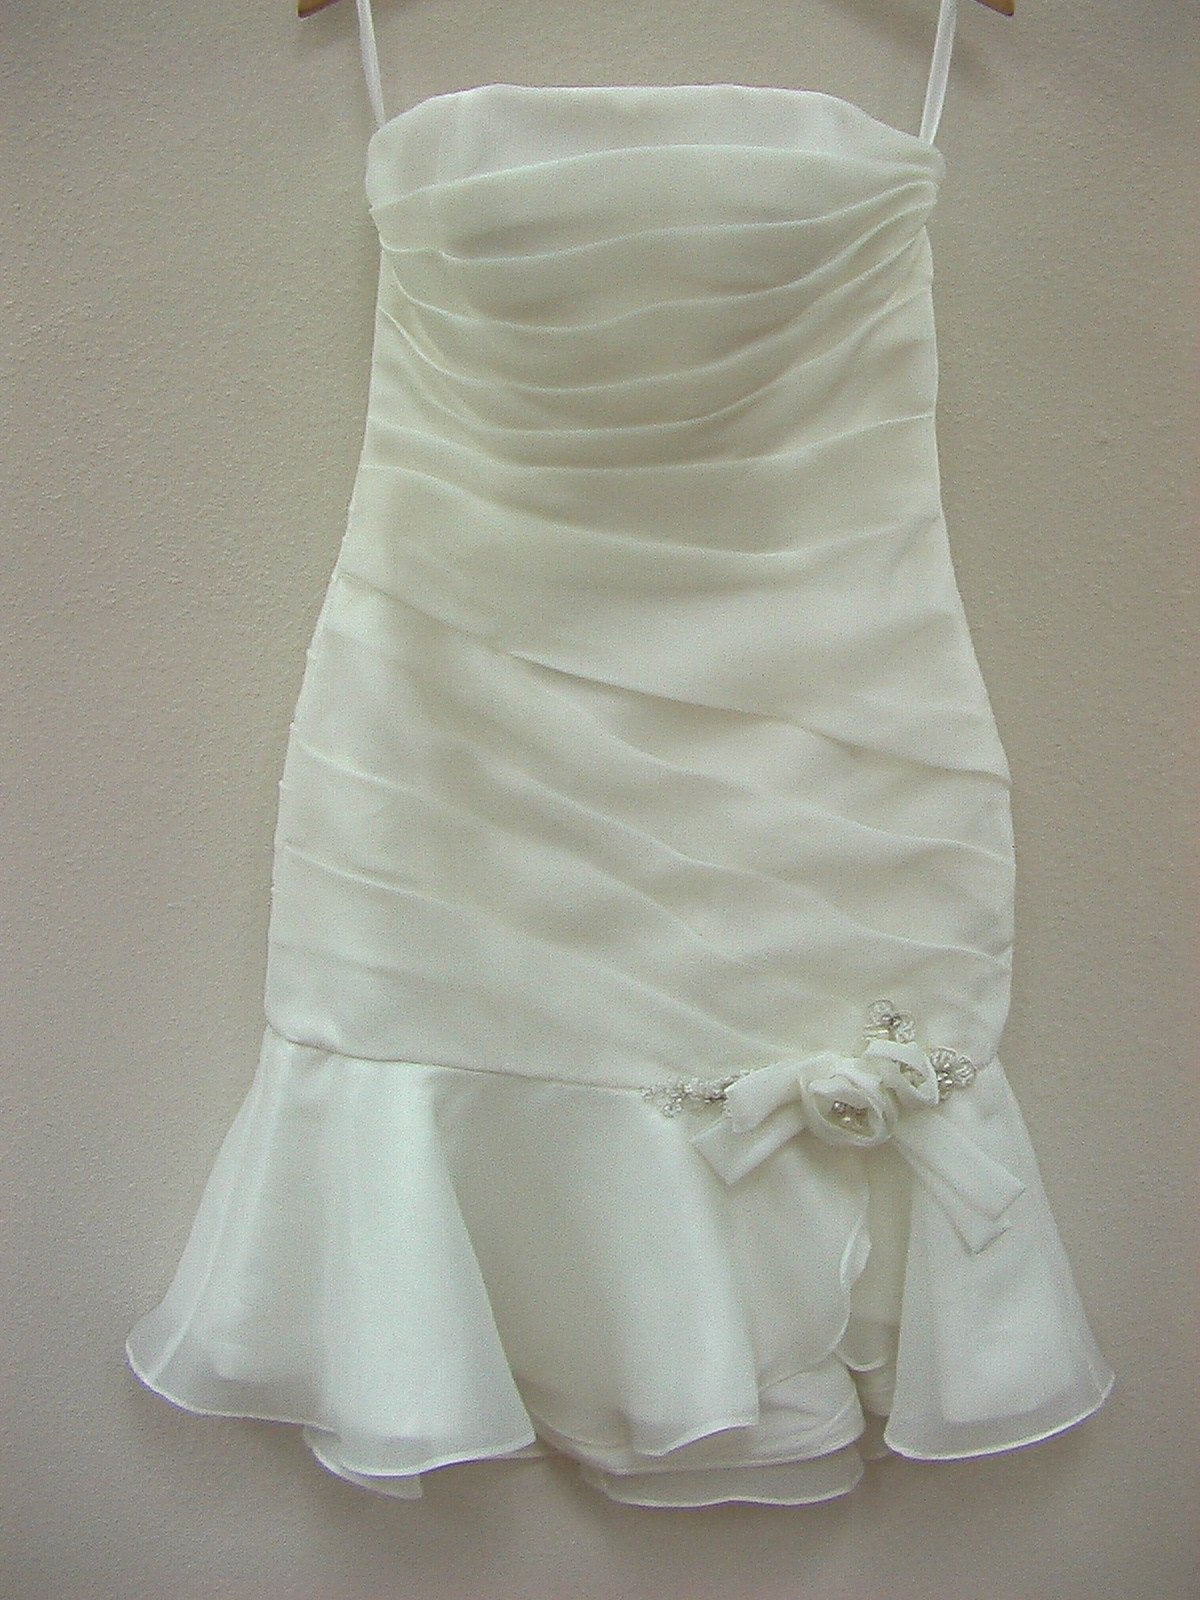 Dere Kiang 11055 Ivory/Silver size 8 New In Stock Wedding Dress - Tom's Bridal